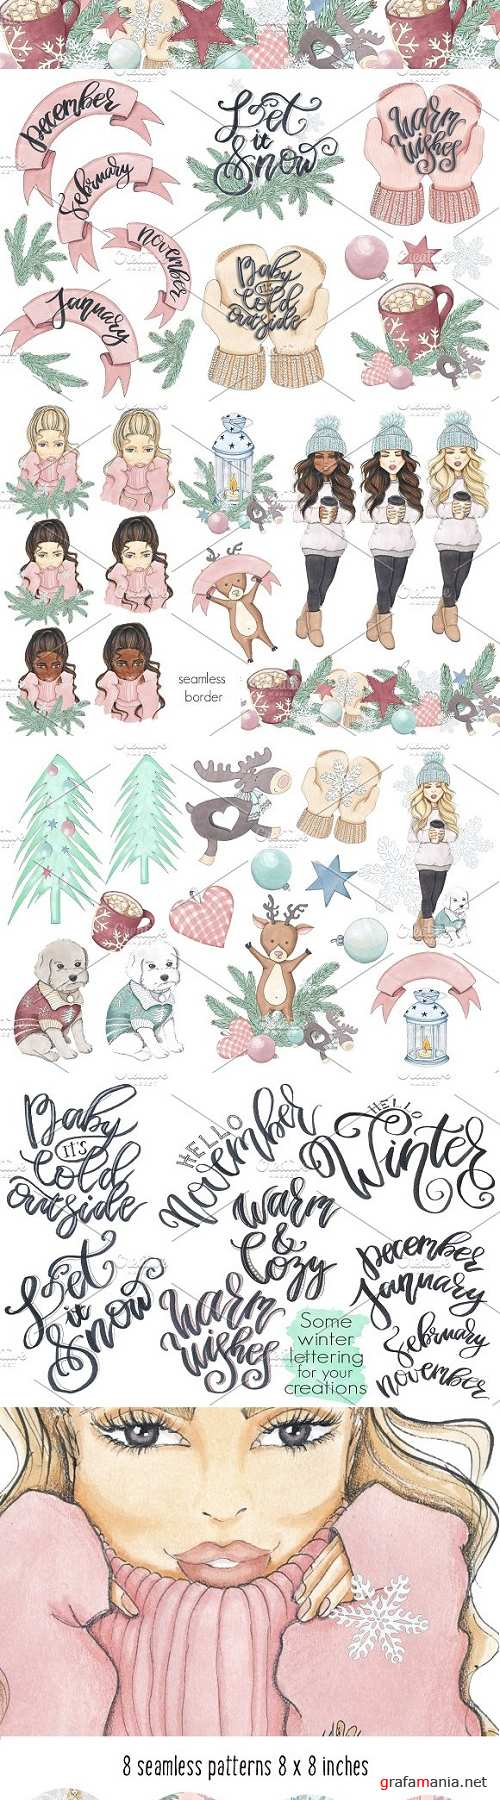 Warm & Cozy Hand-painted collection - 1838951